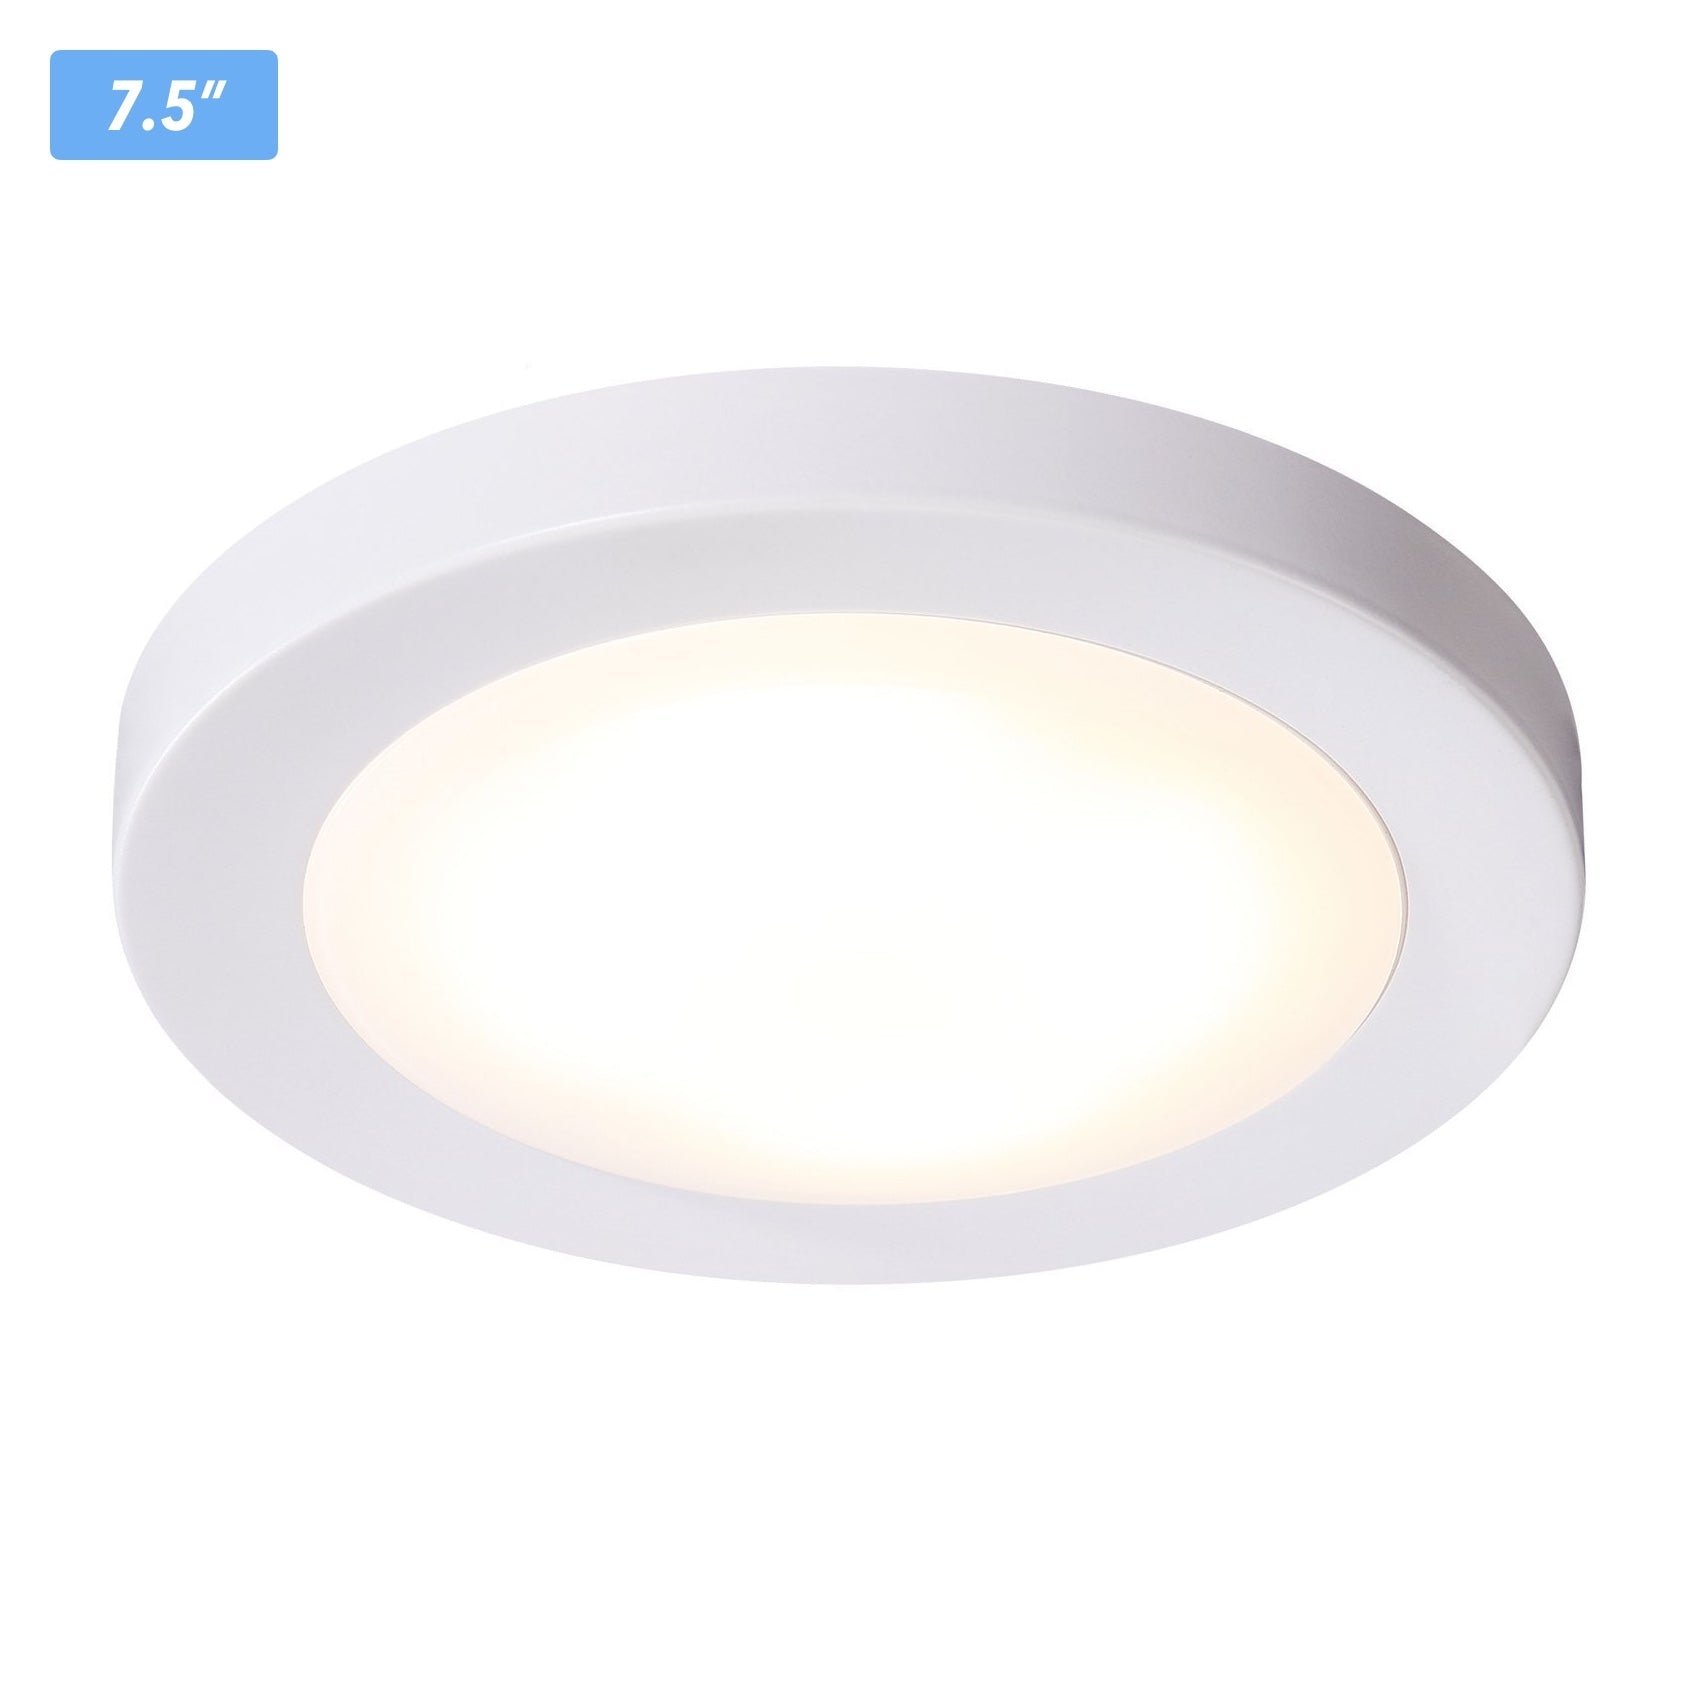 newest d040a 856ad Flush Mount Ceiling Light, 7.5-inch, Dimmable LED, White Finish, Wet  Location, 120V/12W/840lm